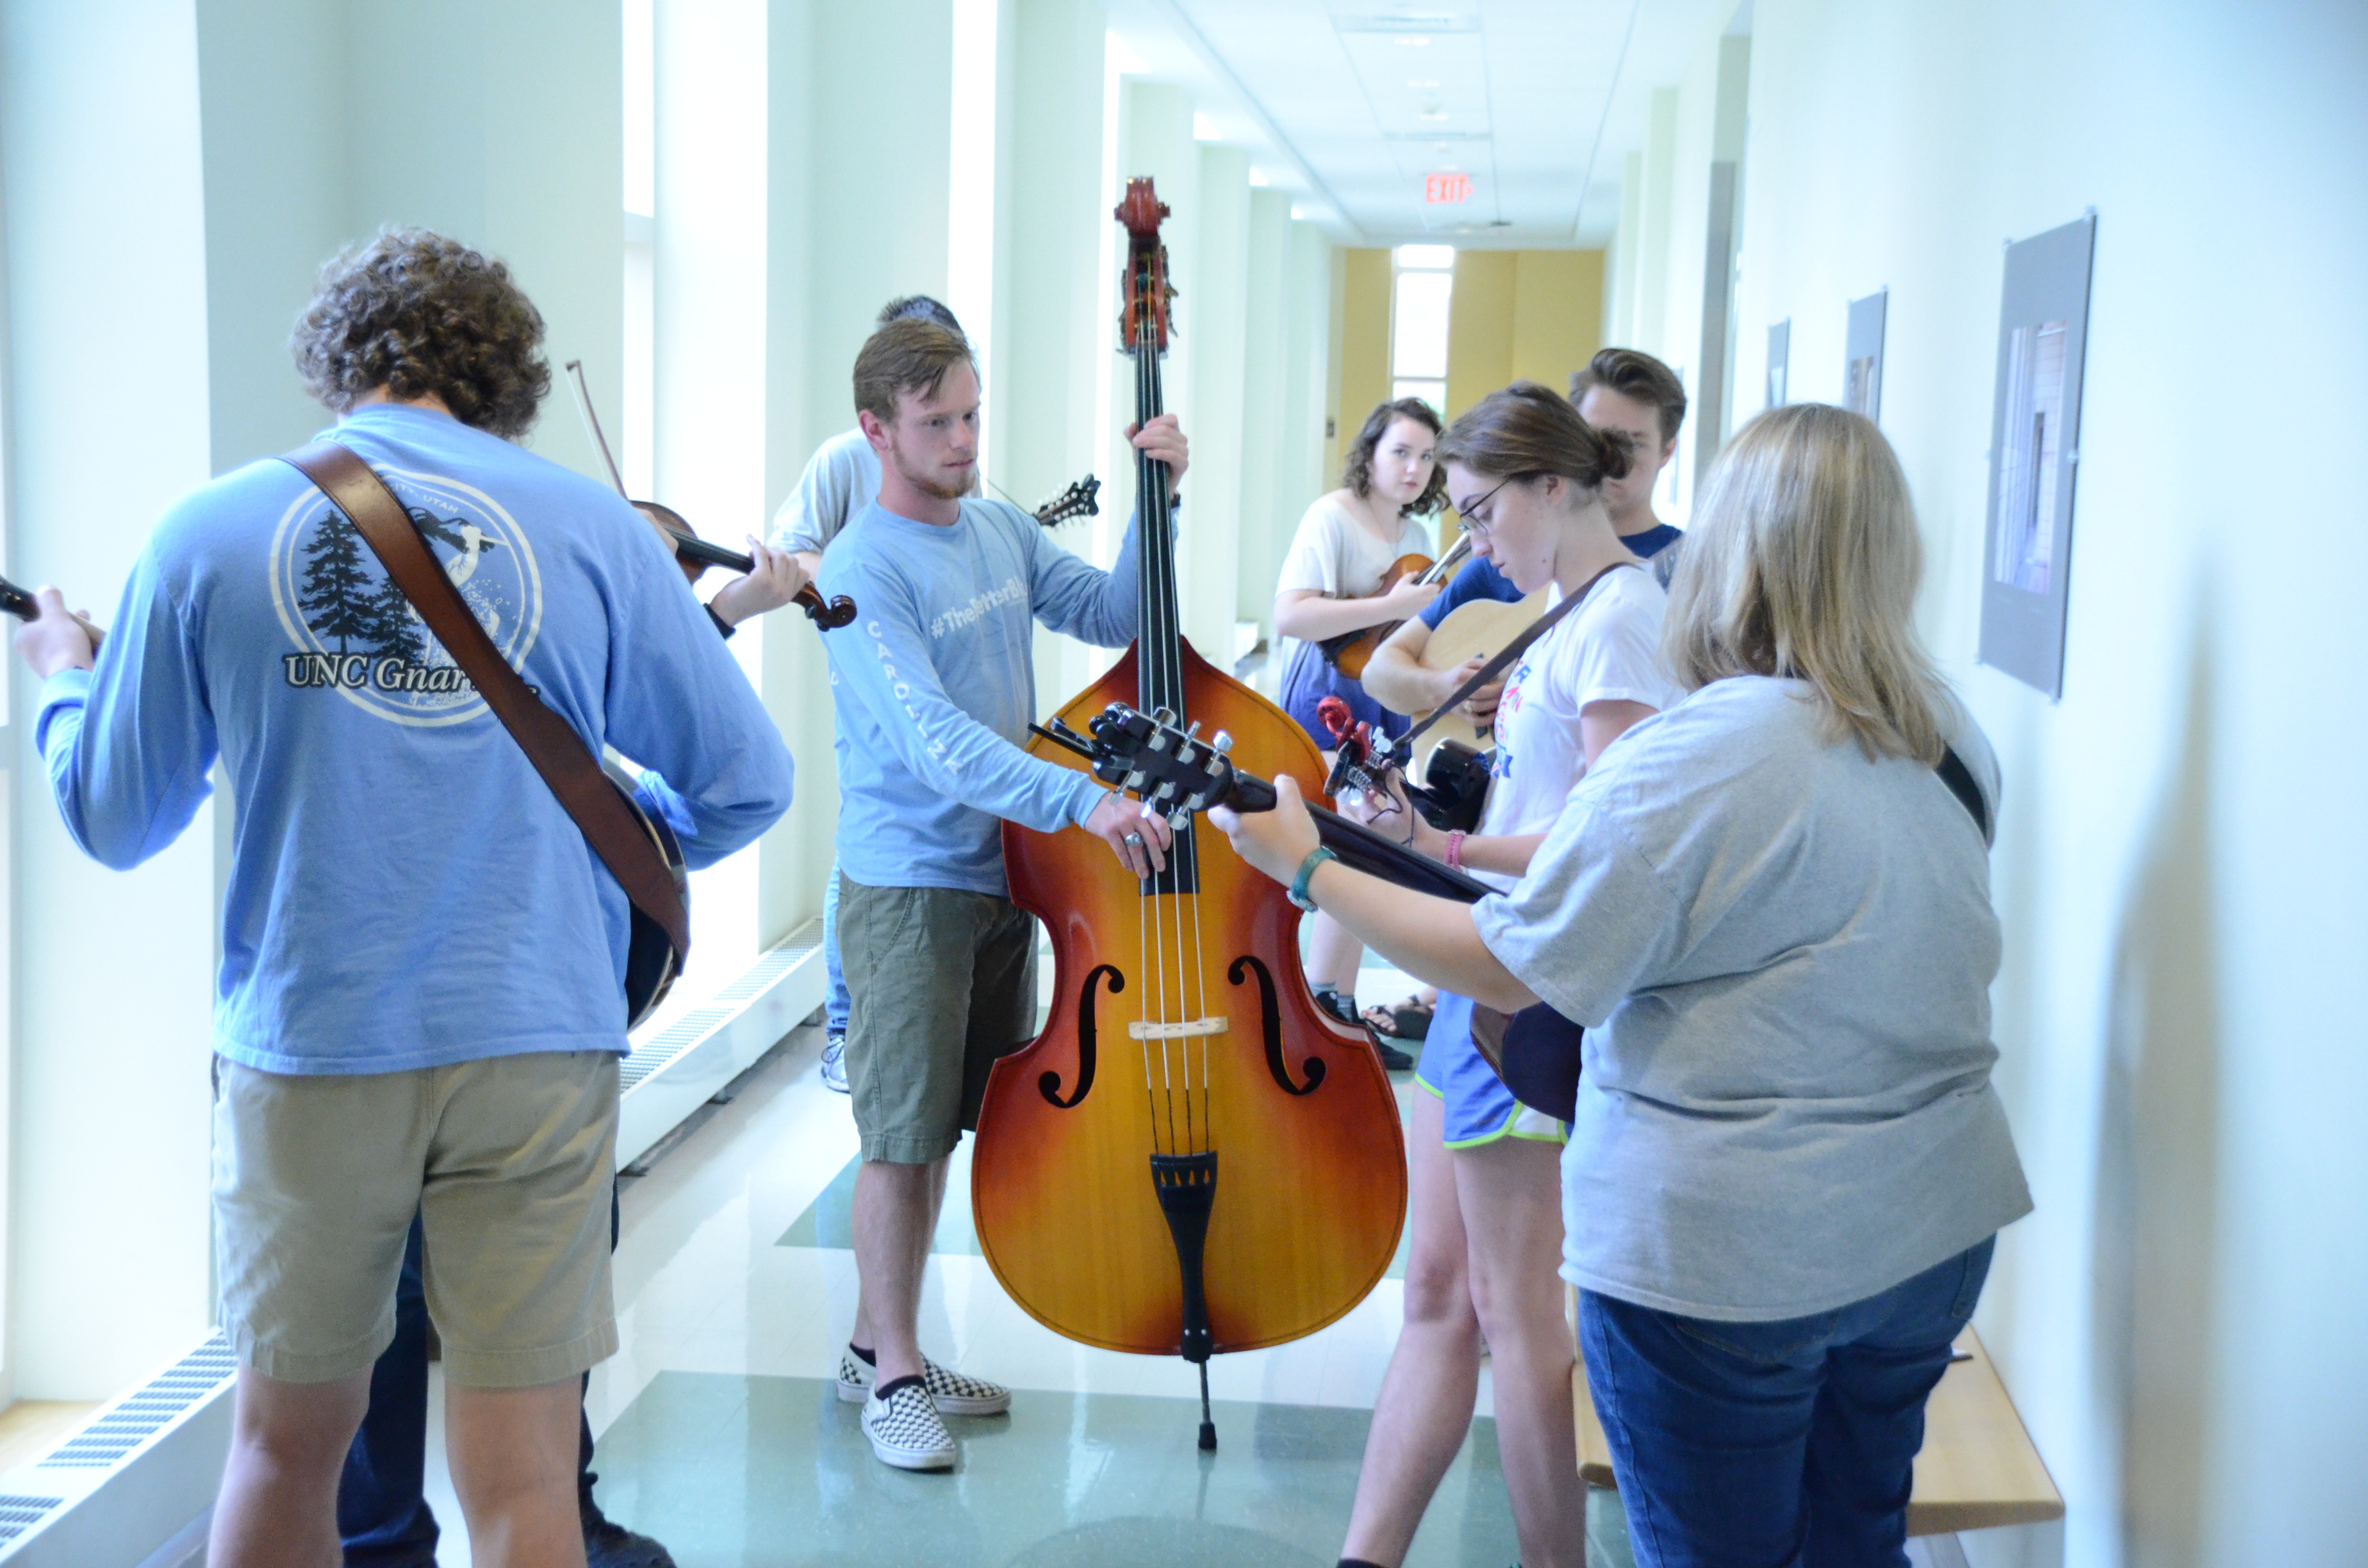 2017-Spring-Concert-Dress-rehearsal-in-hallway